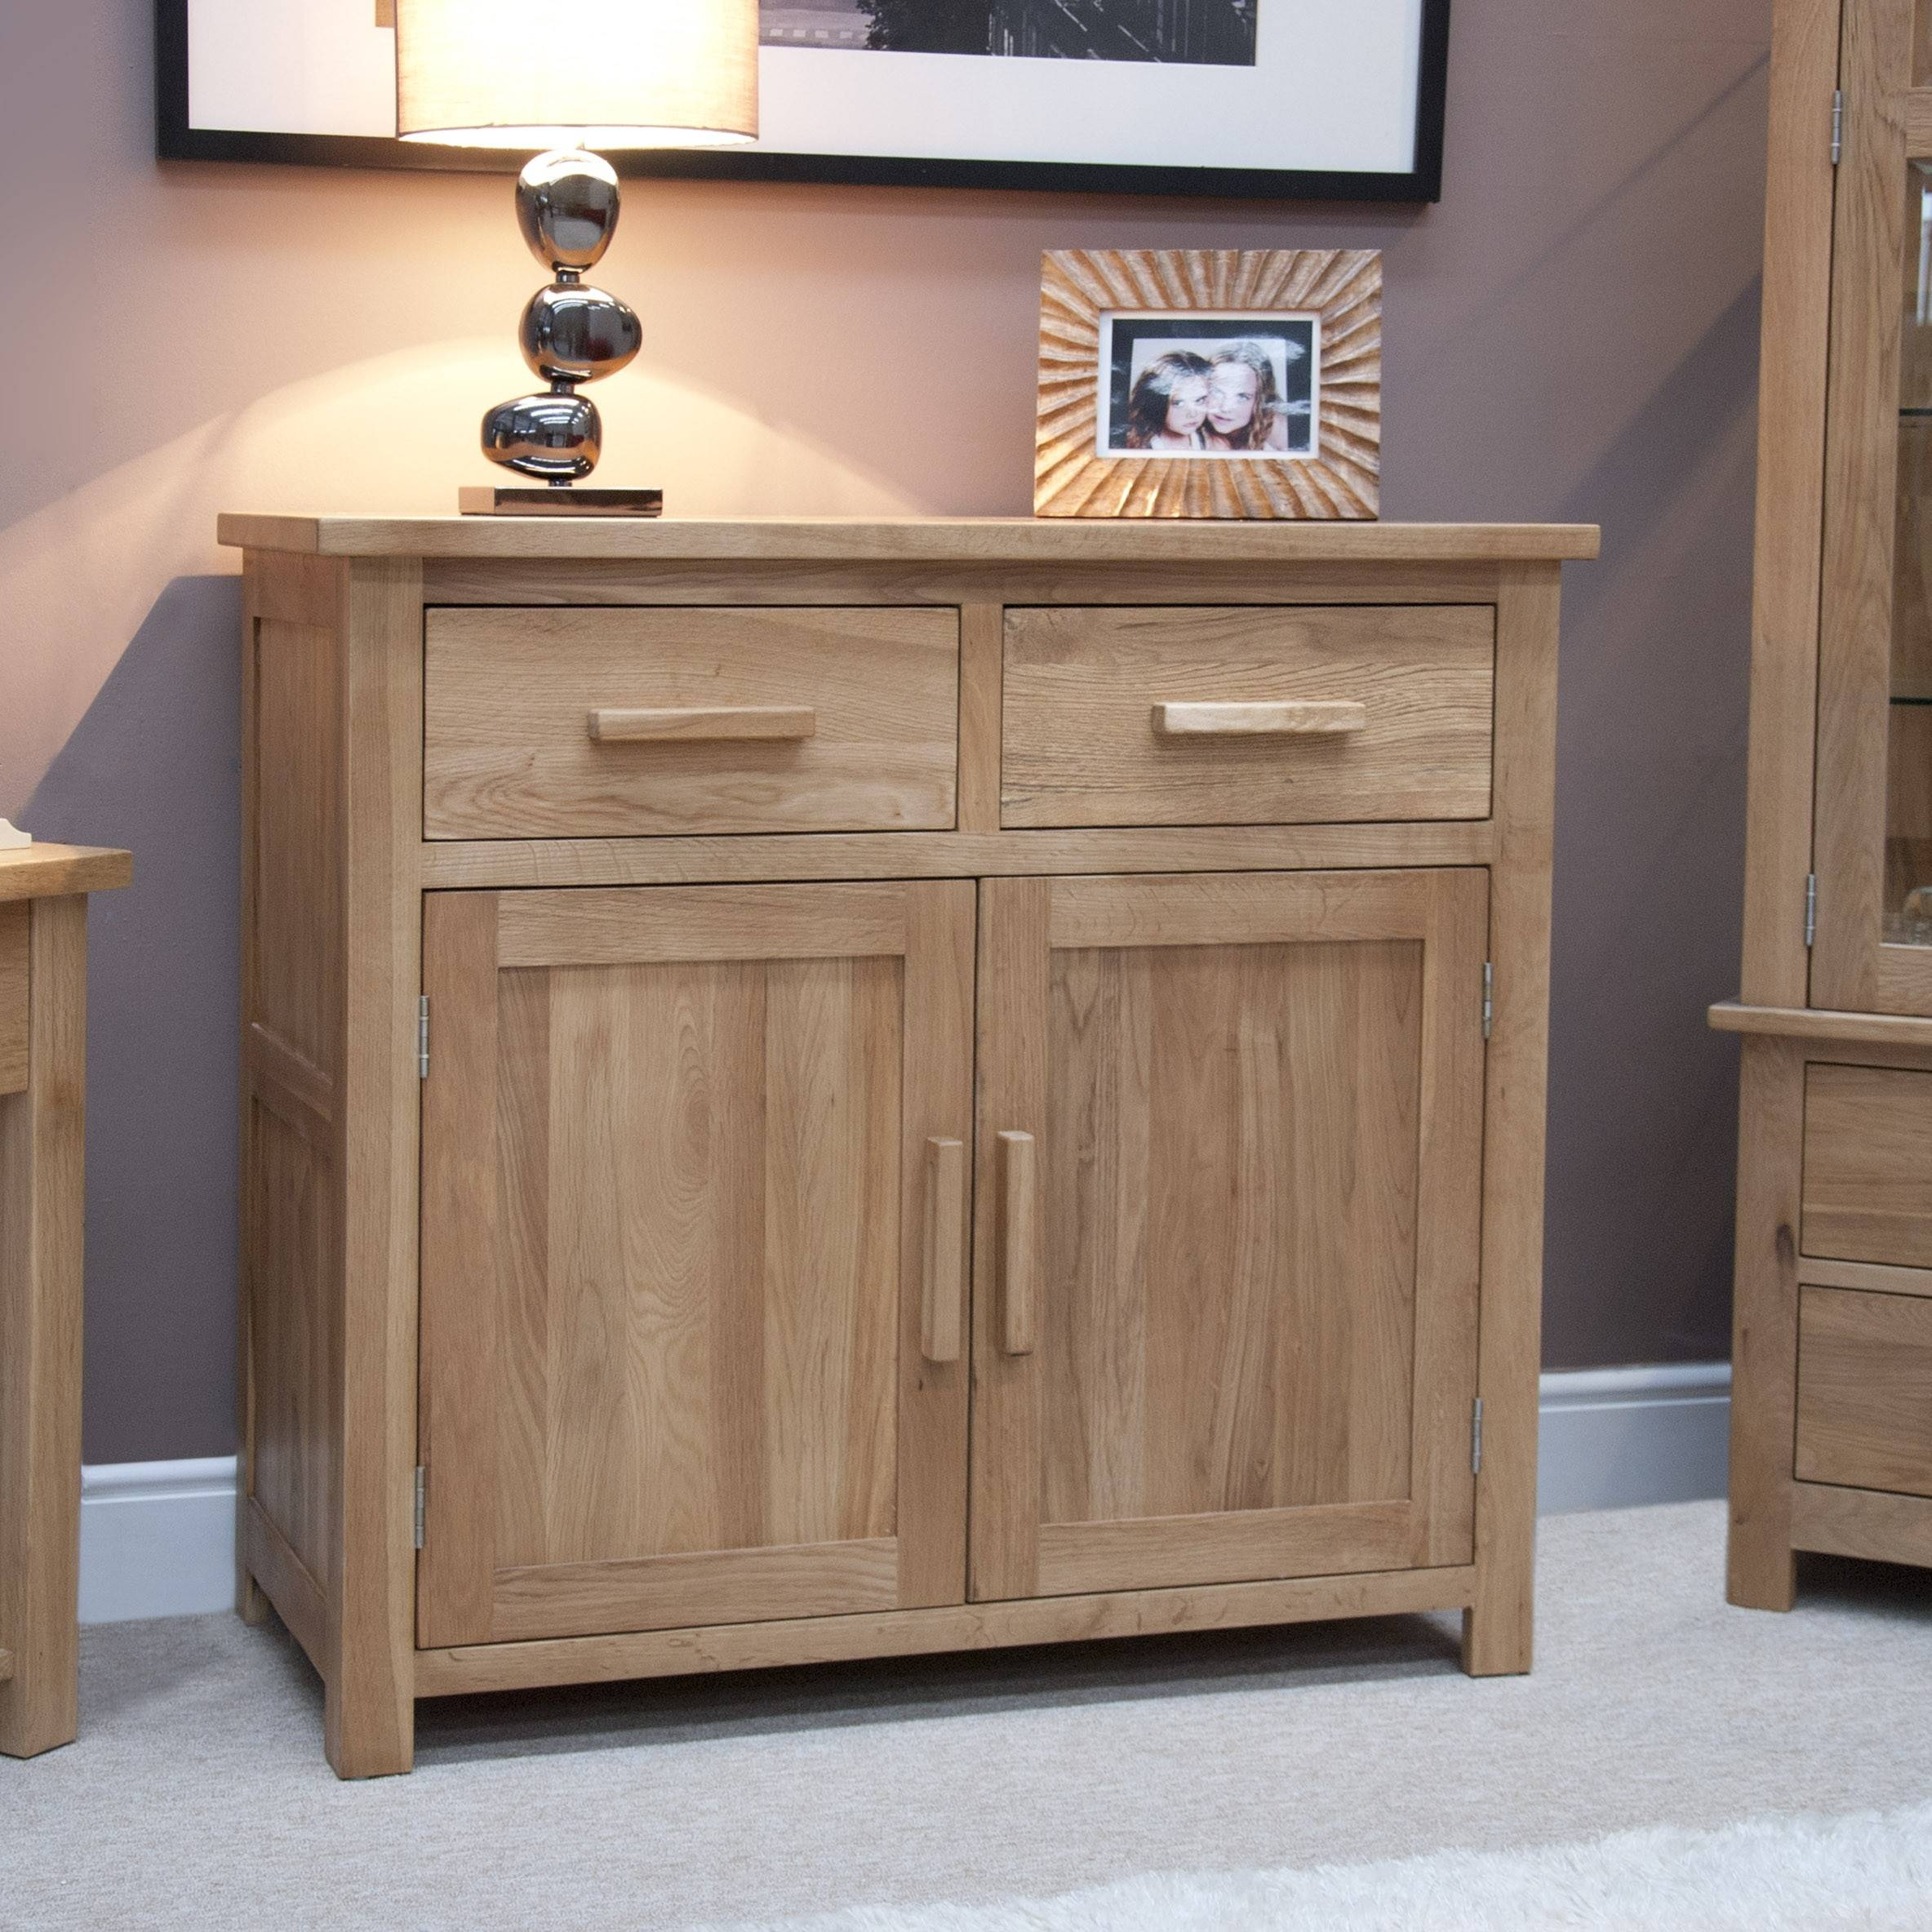 Opus Solid Oak Homestyle Furniture | Furniture4Yourhome Pertaining To Narrow Oak Sideboards (#8 of 15)